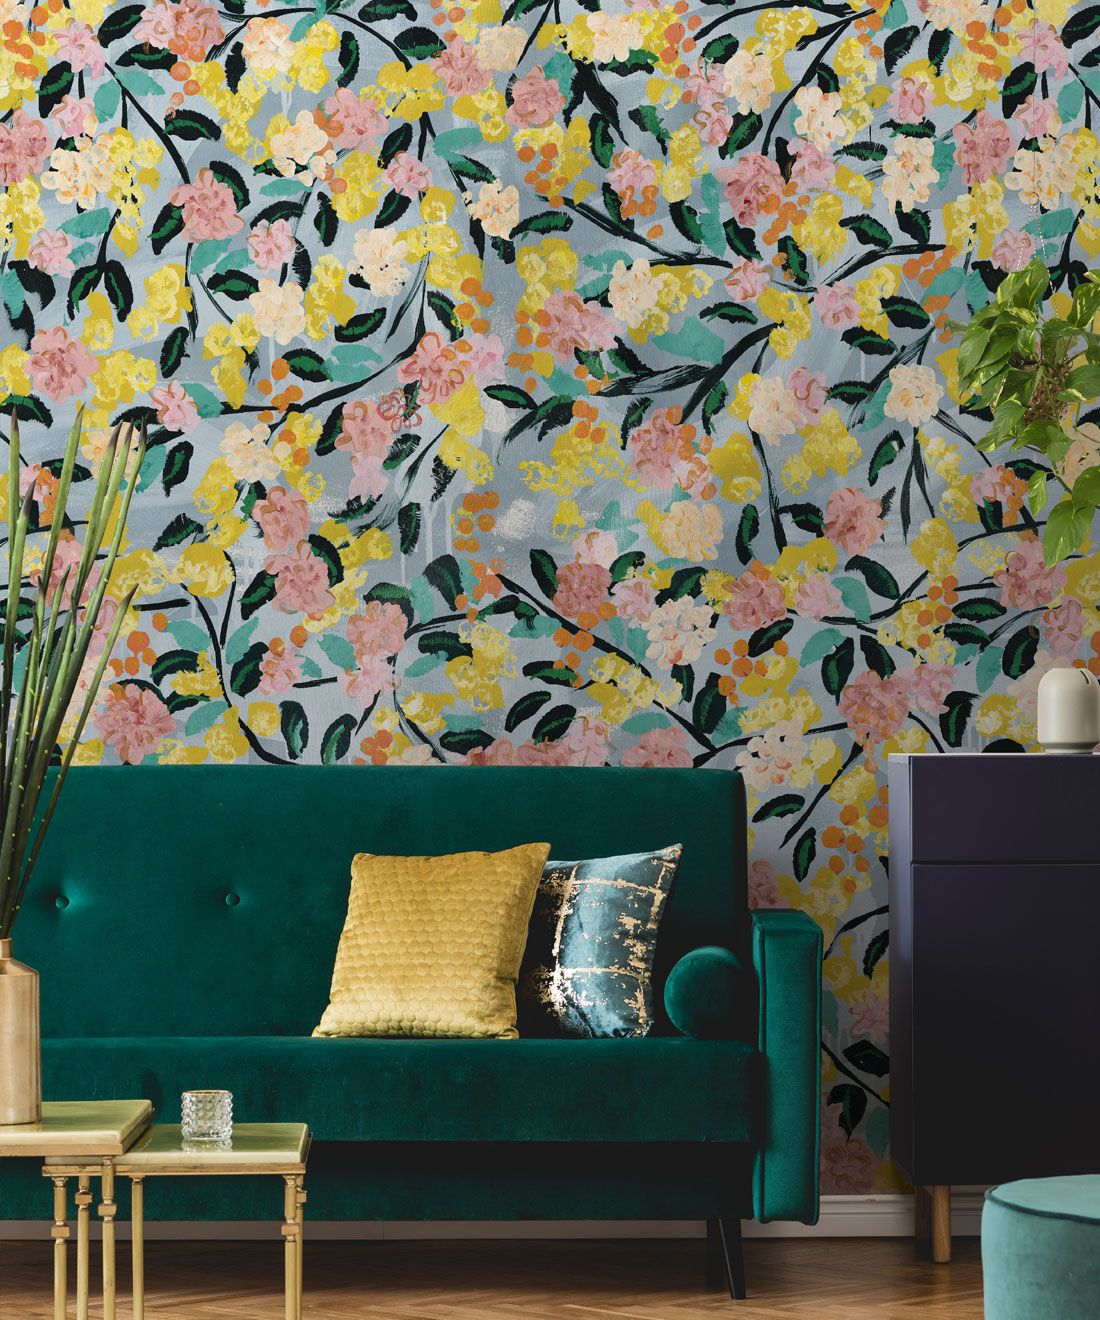 Blossom Wallpaper •Colorful Floral Wallpaper • Tiff Manuell • Abstract Expressionist Wallpaper • Insitu Close Up